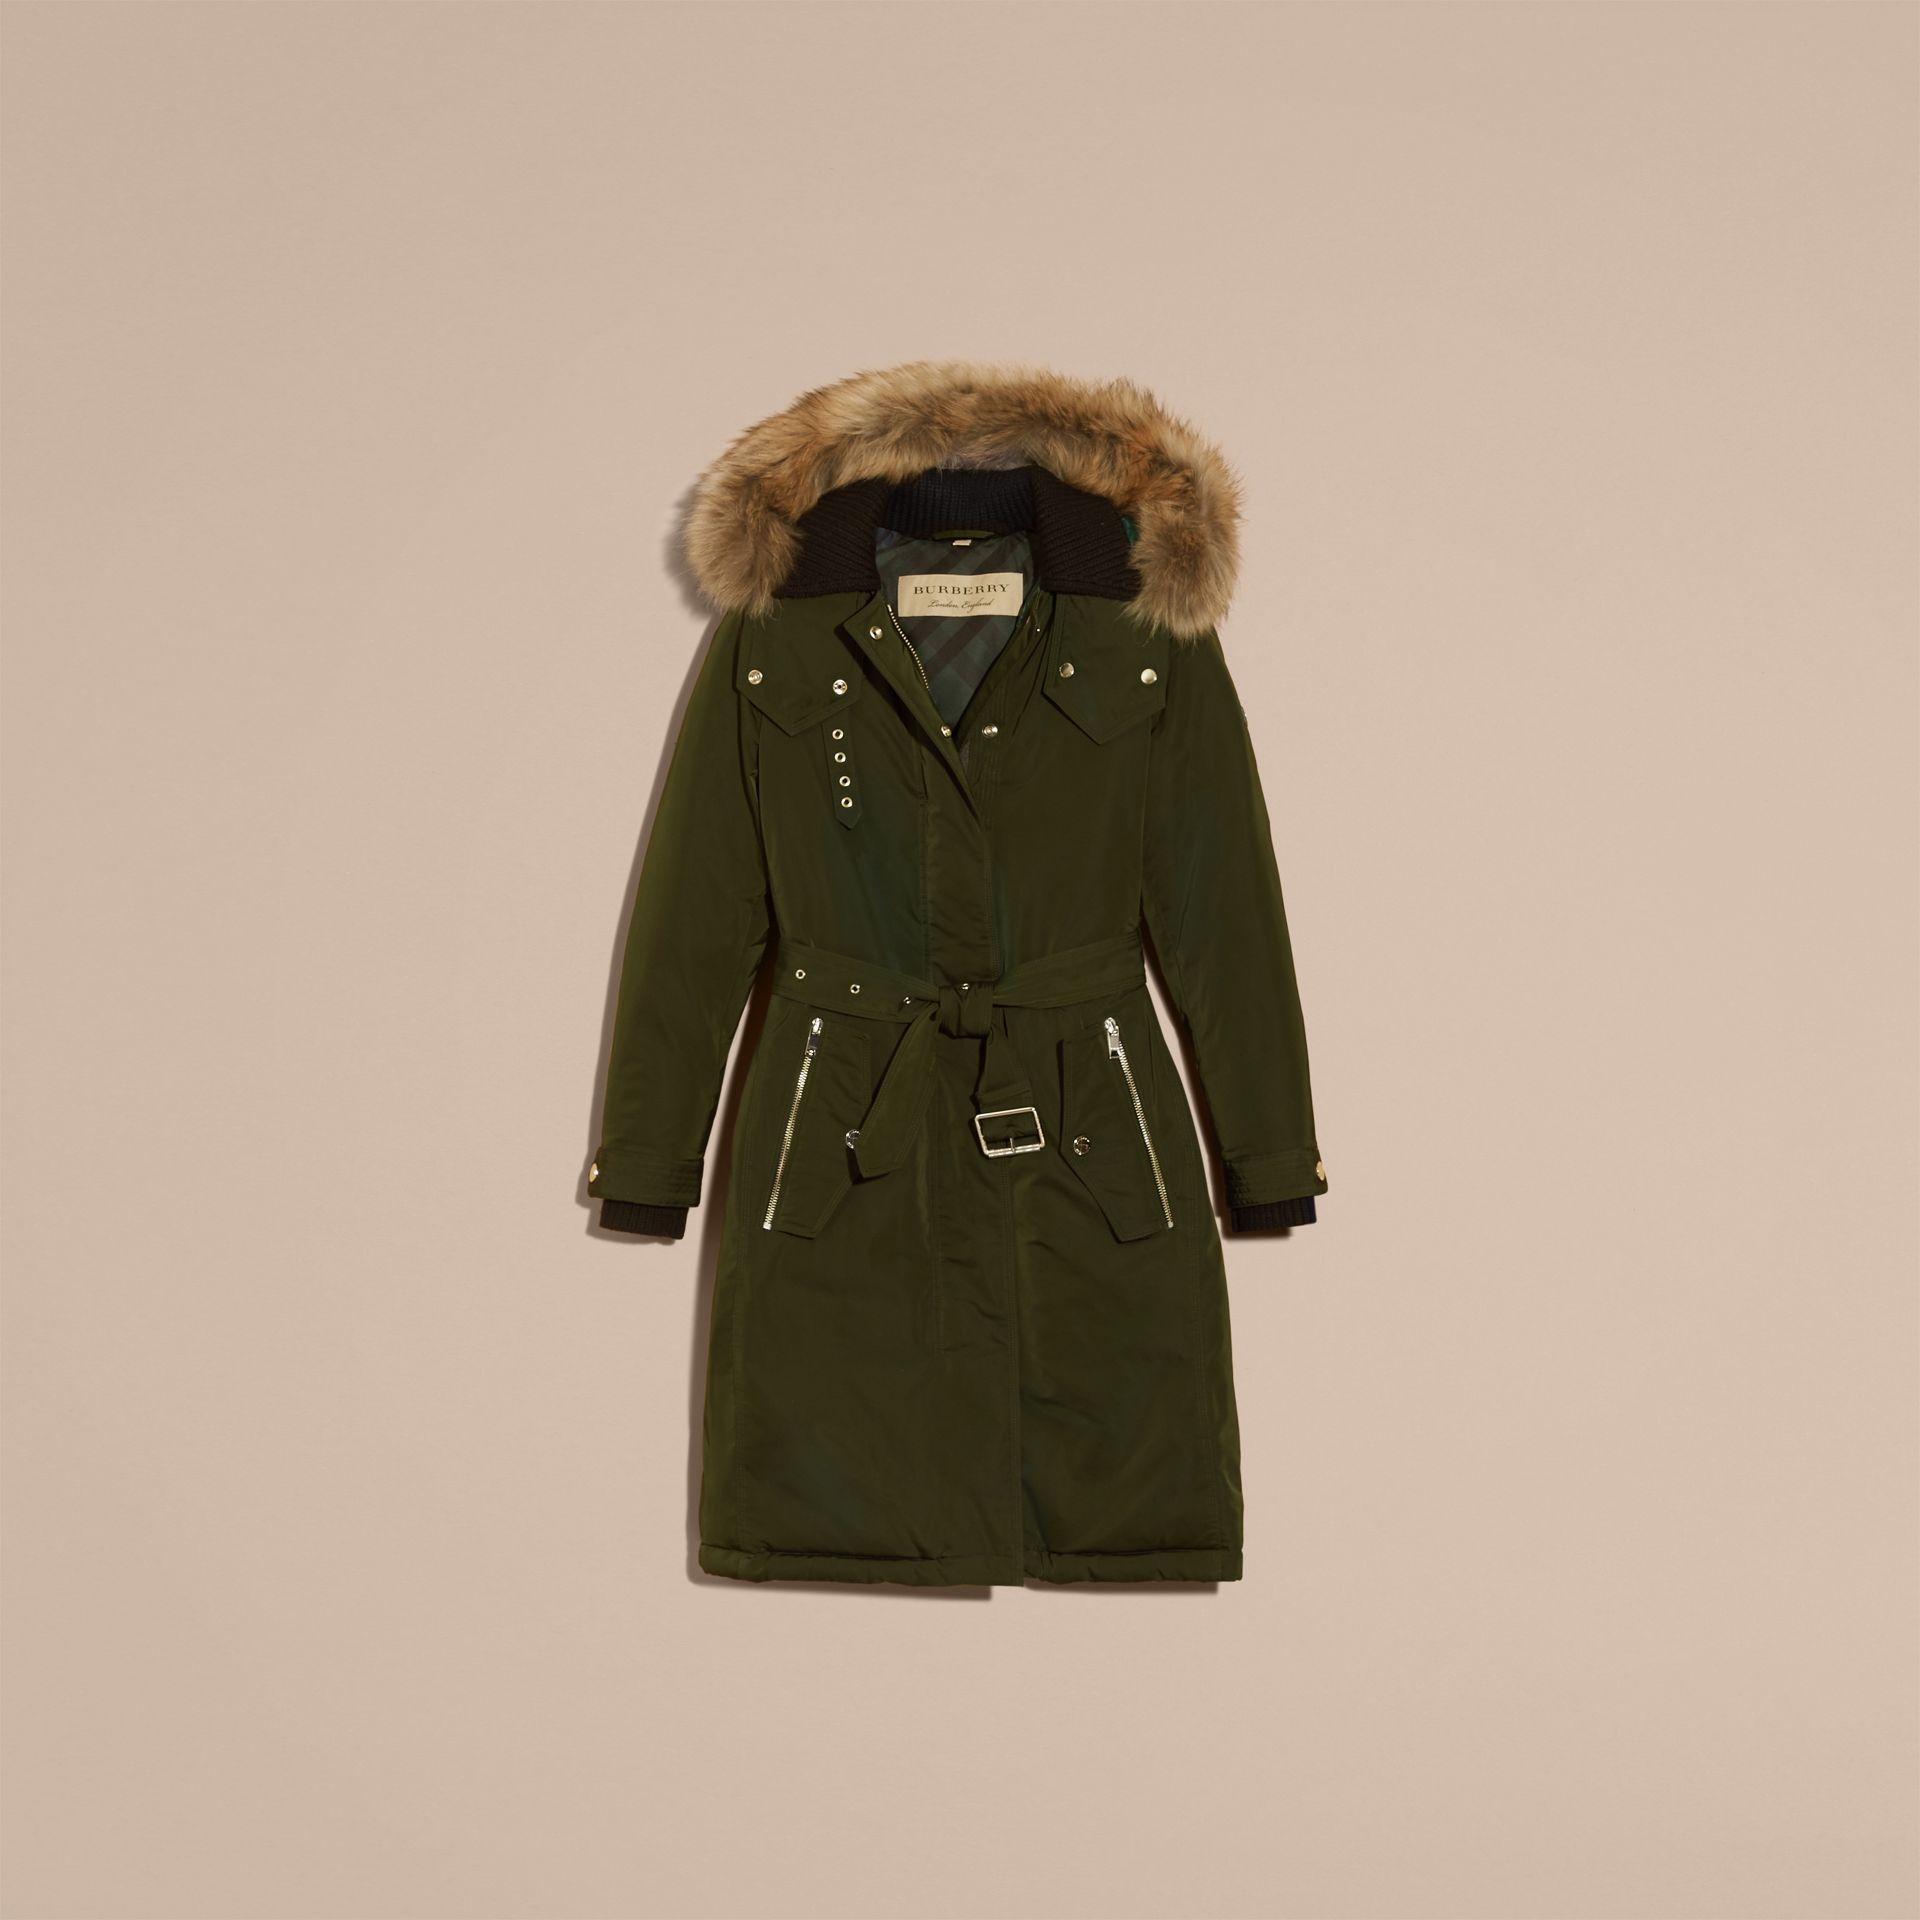 Down-filled Parka Coat with Detachable Fur Trim in Dark Cedar Green - Women | Burberry United States - gallery image 4